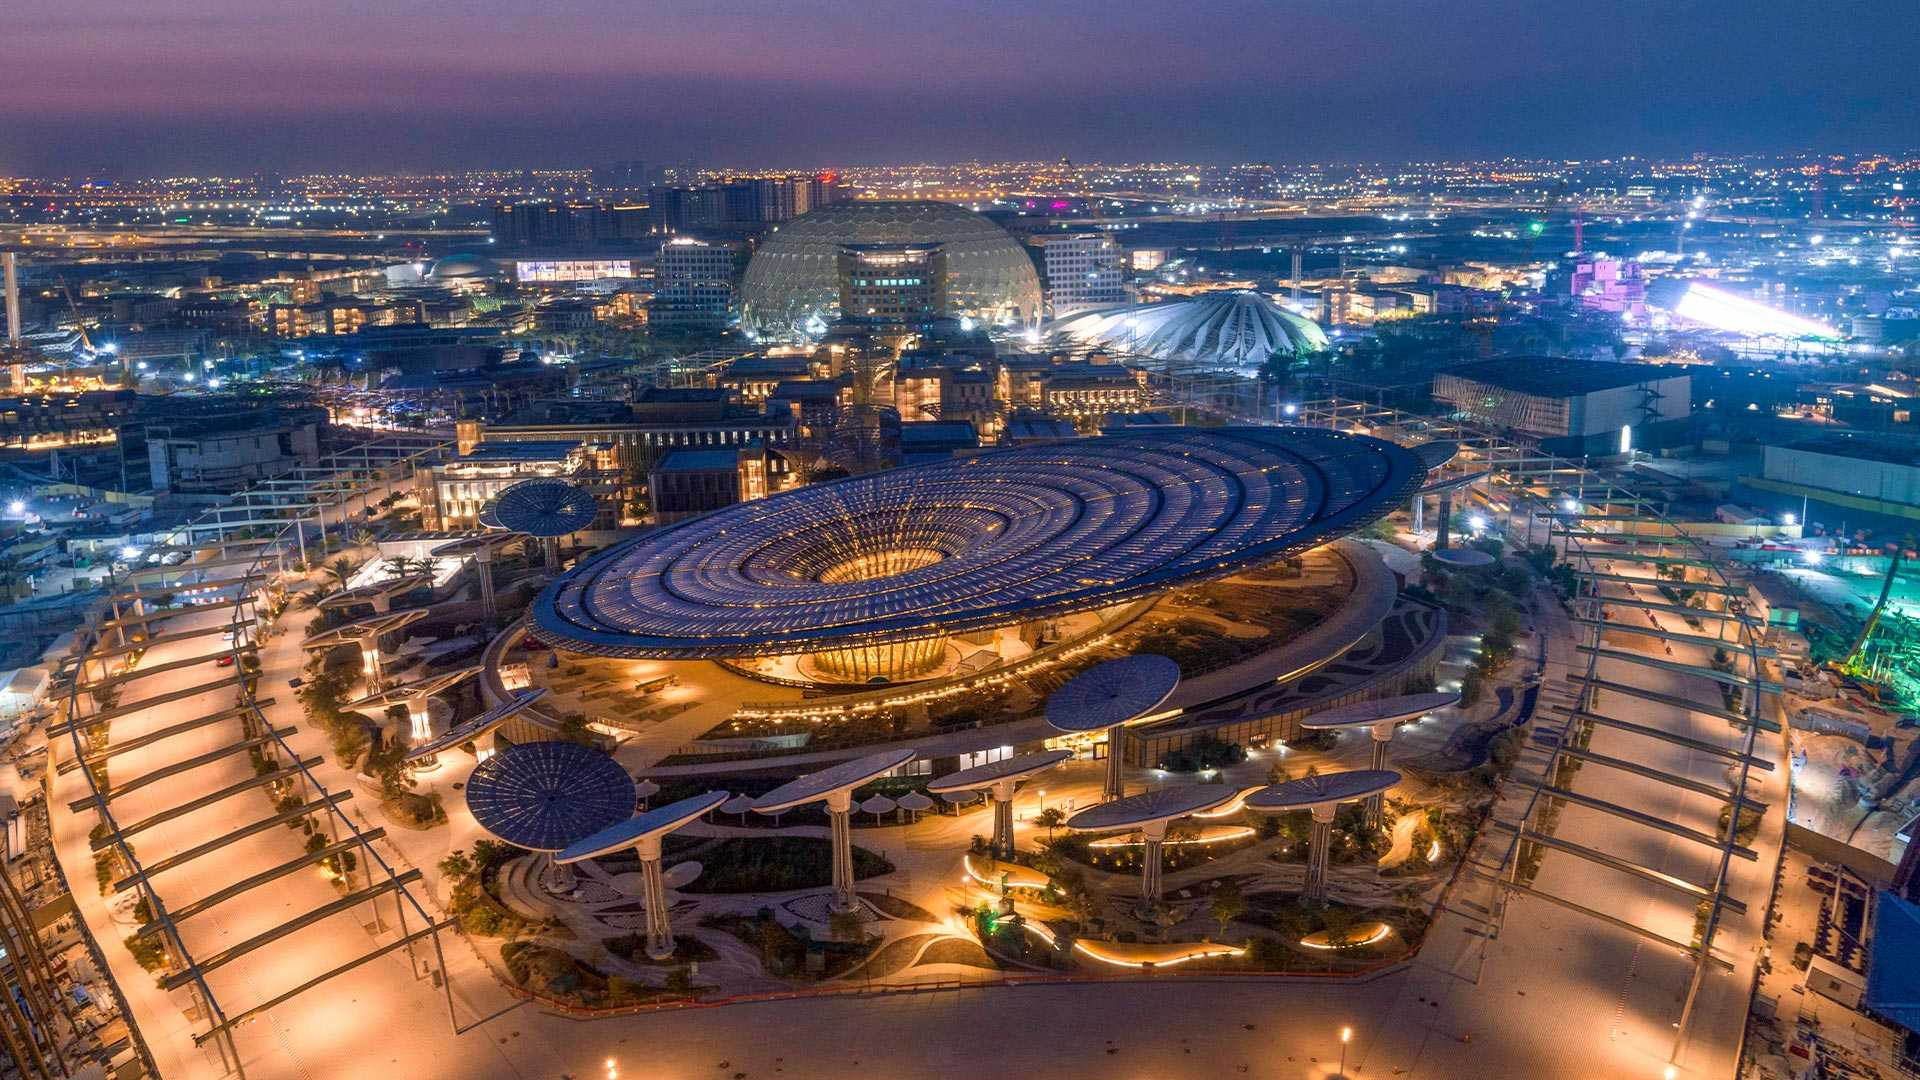 100 days to go until Expo 2020 Dubai: Sheikh Mohammed launches countdown